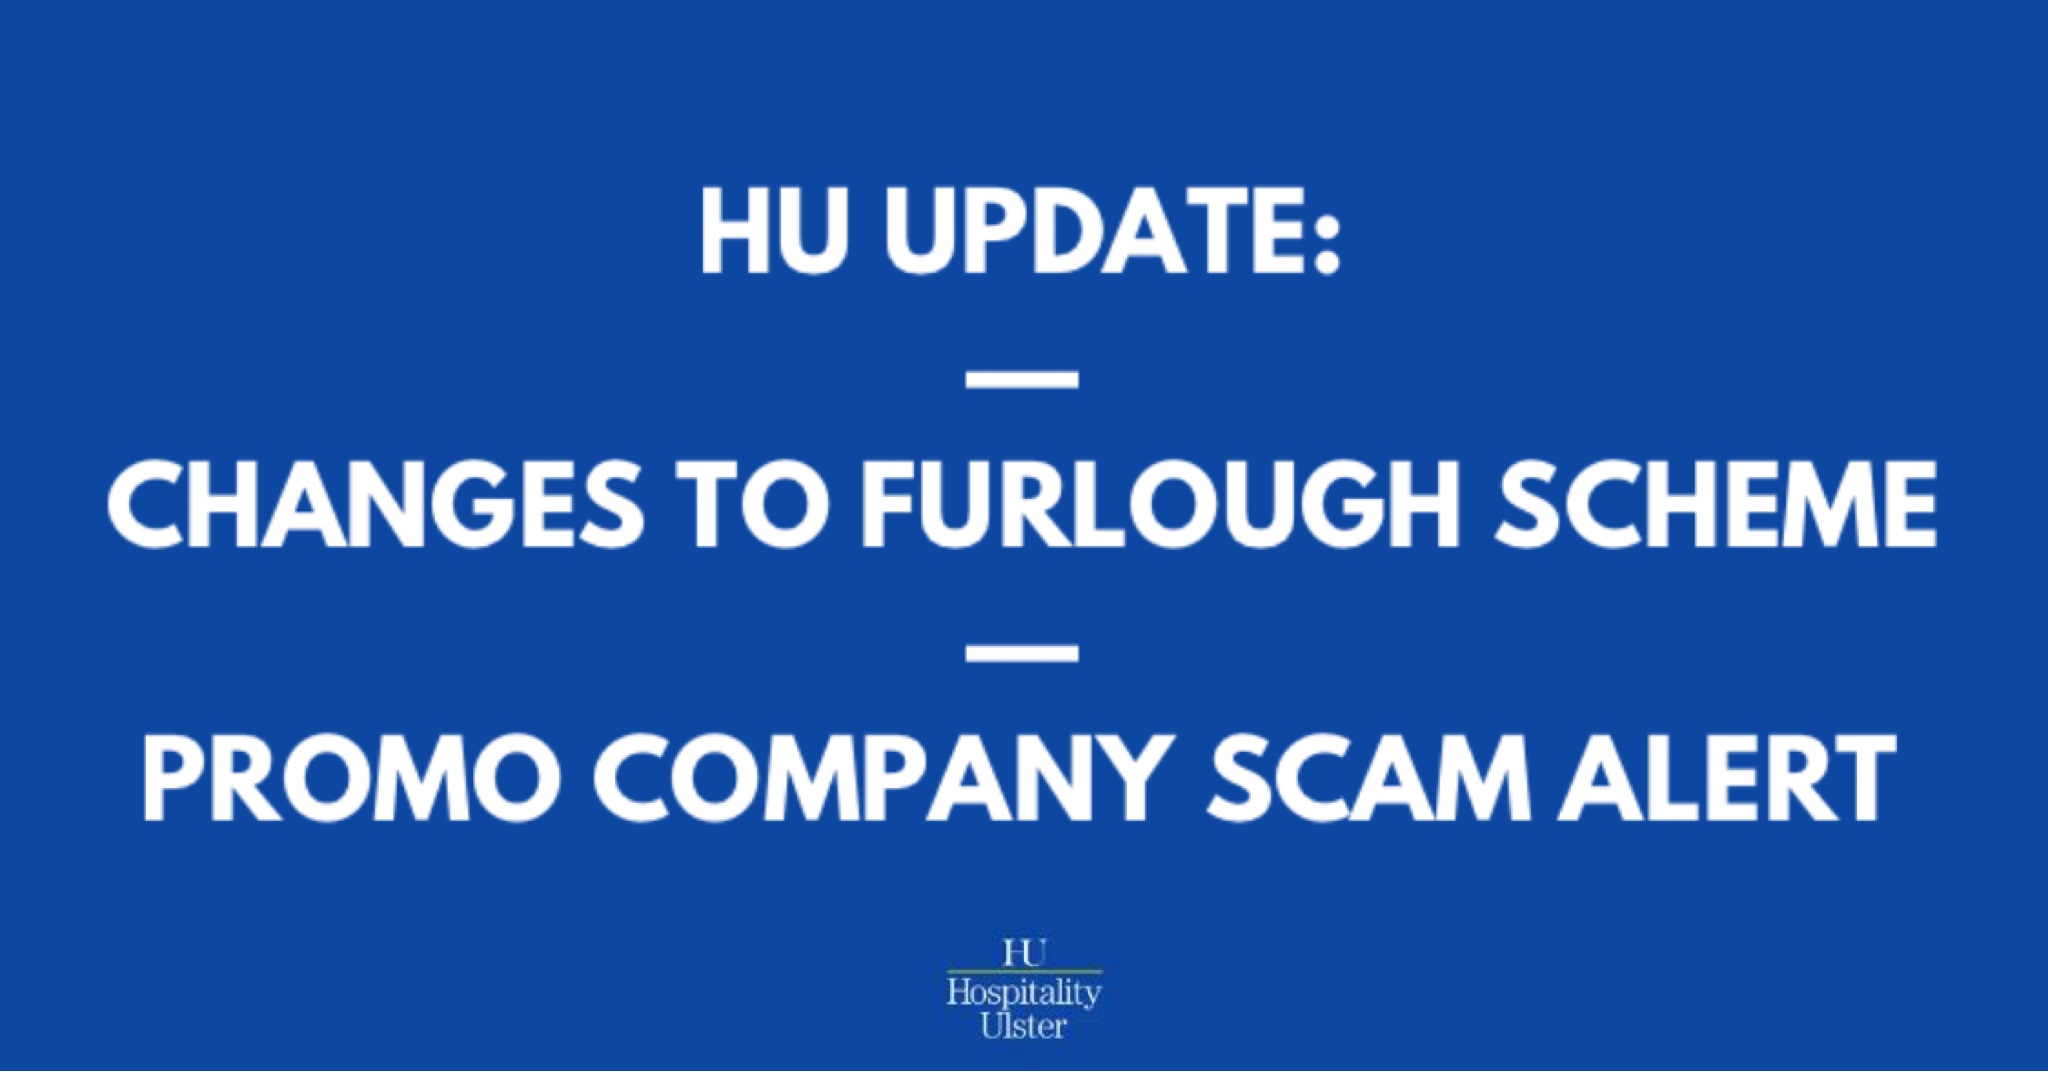 CHANGES TO FURLOUGH SCHEME AND PROMO COMPANY SCAM ALERT